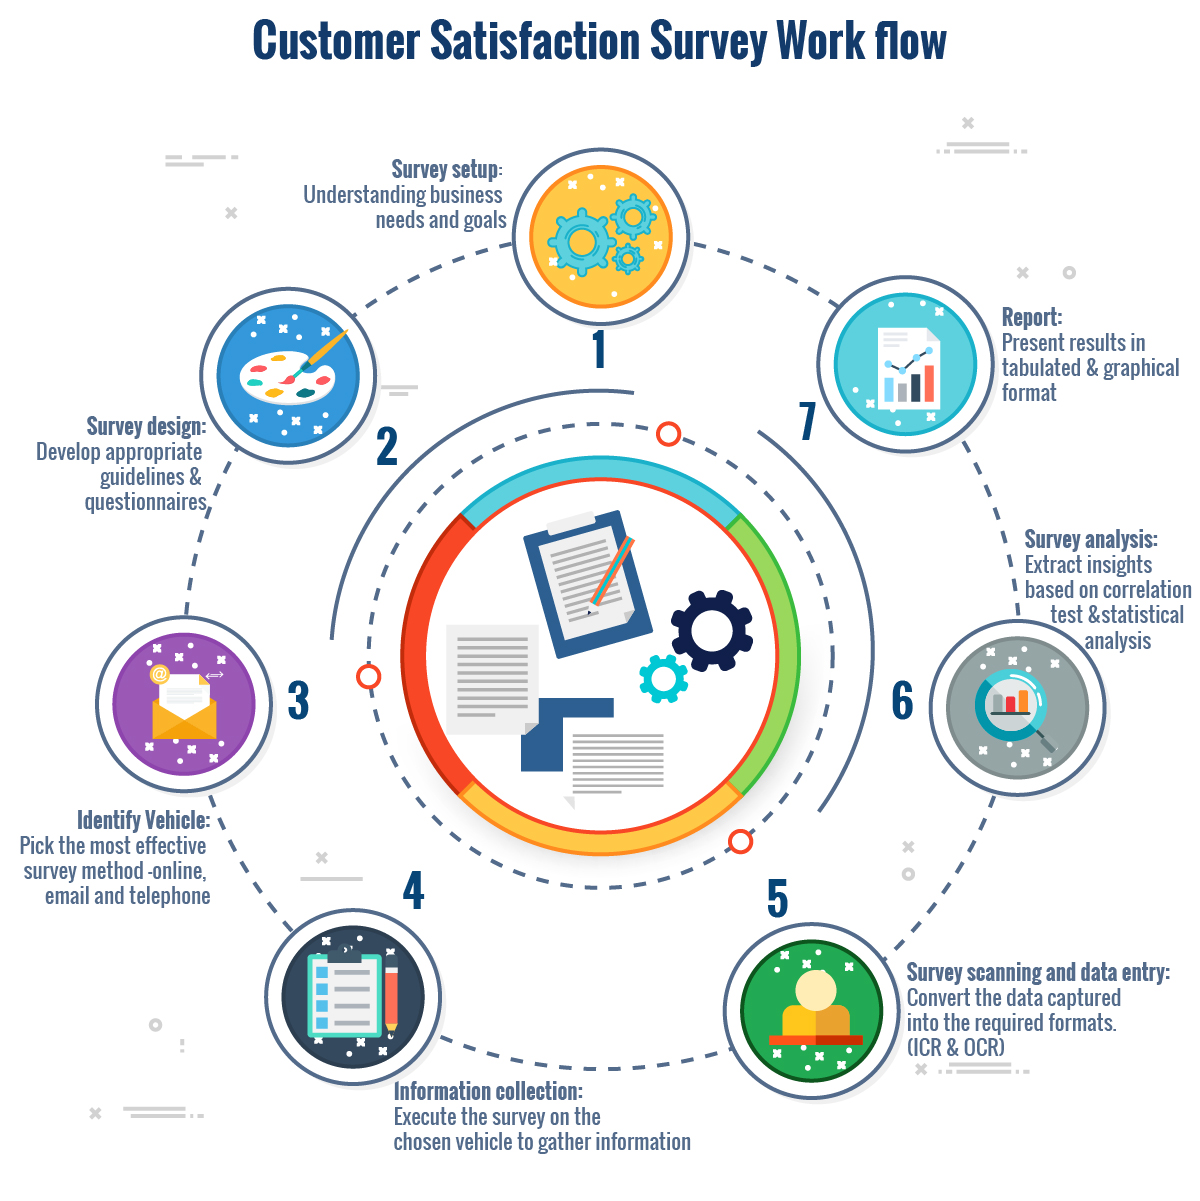 quality management customer satisfaction Customer satisfaction survey software once objectives have been established, quality solutions select the right survey software, tools and methodologies for contacting clients.